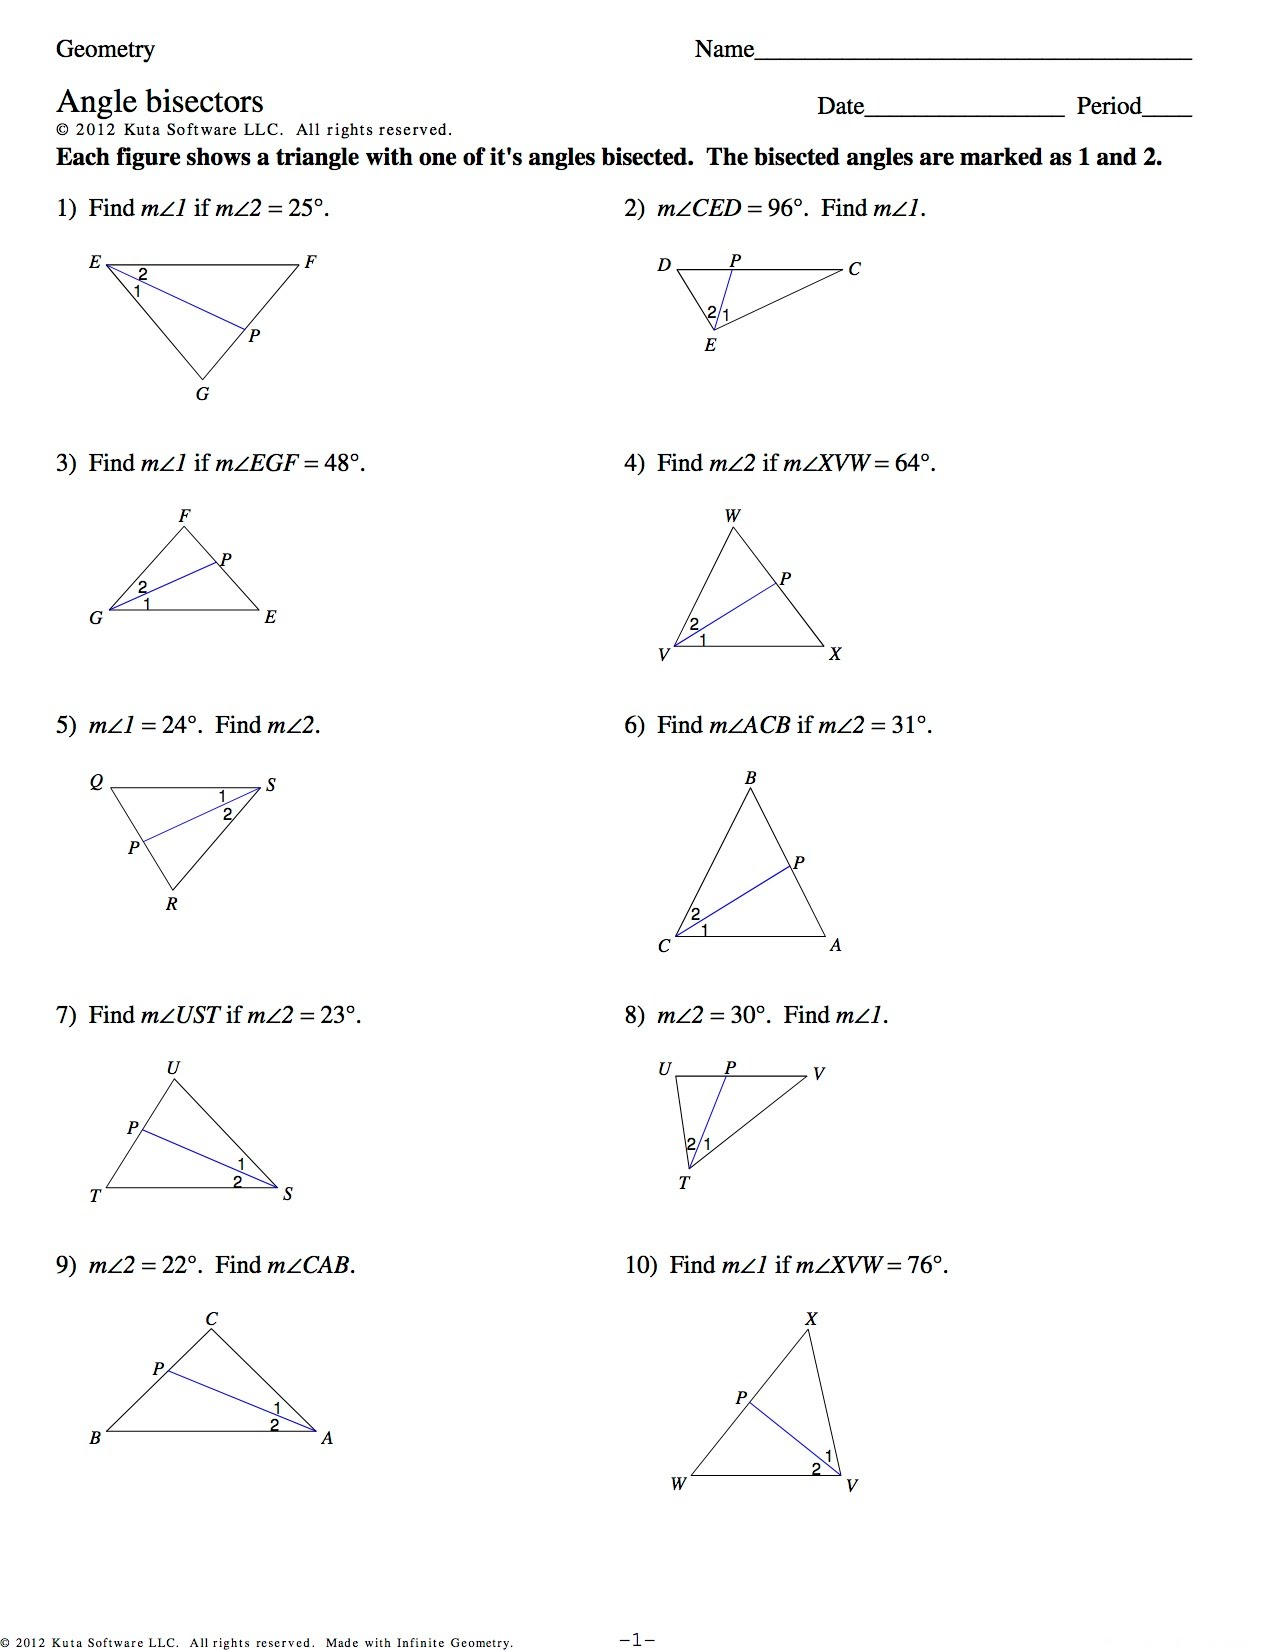 Kuta Worksheet On Angles